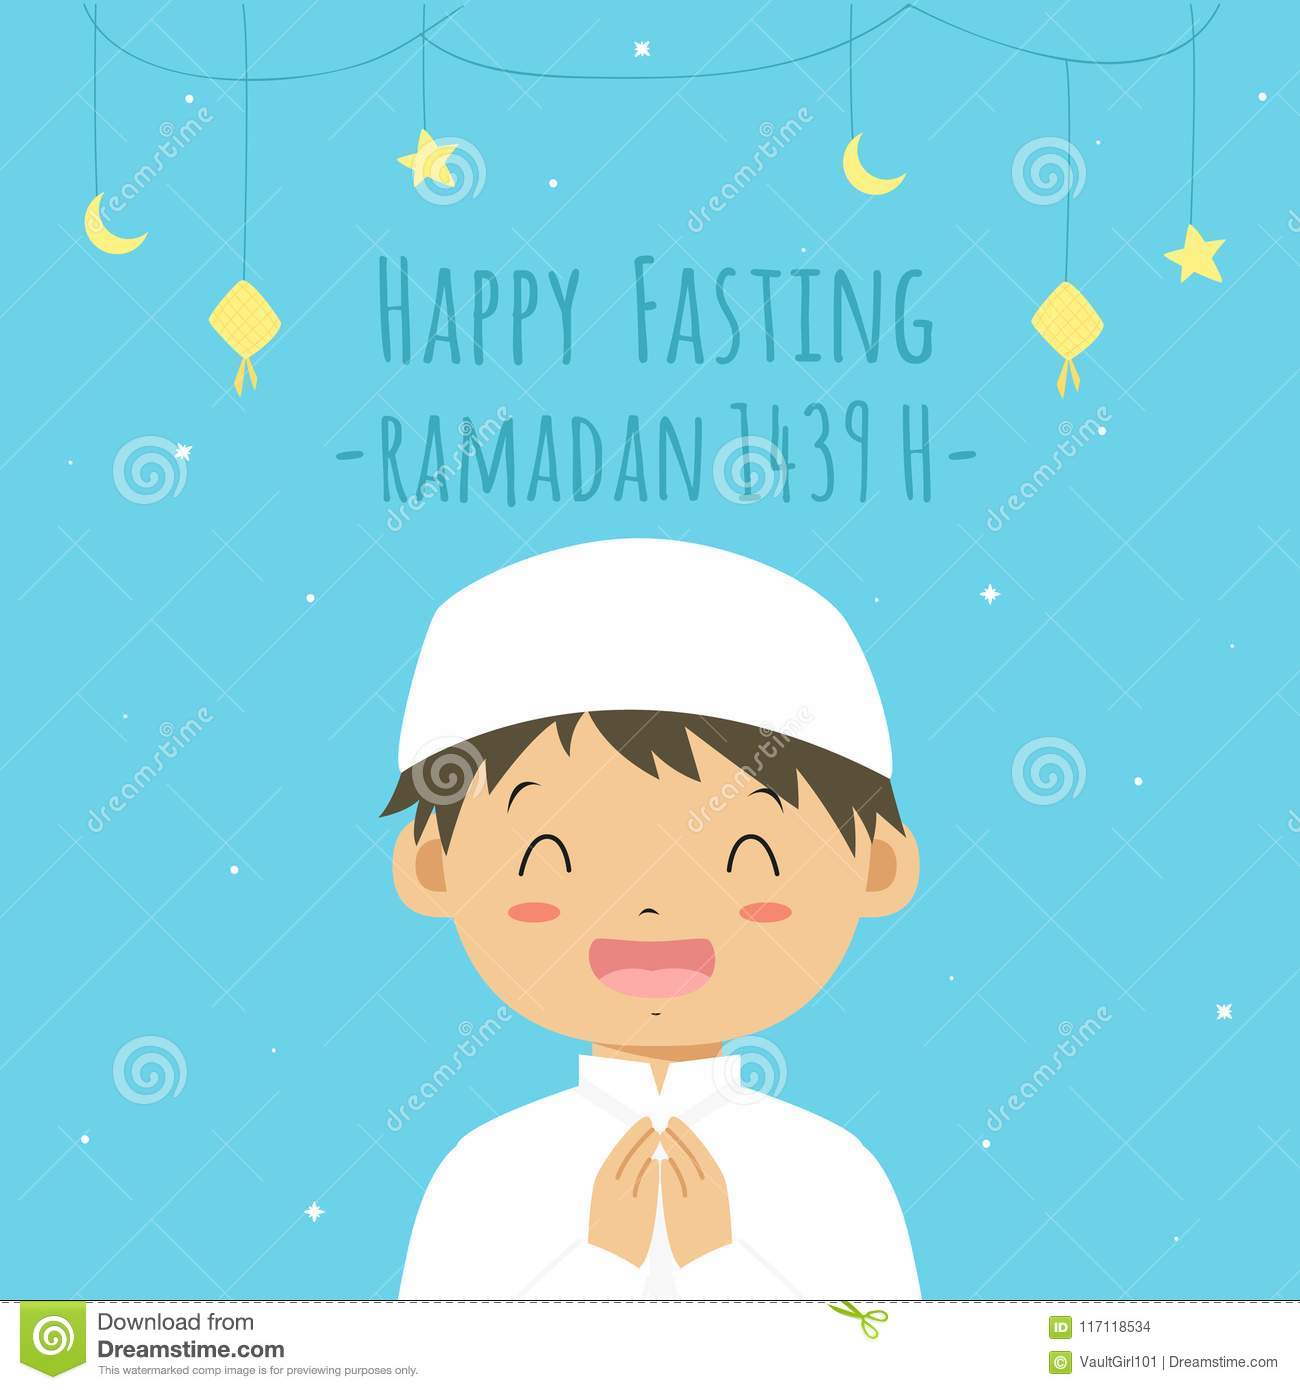 graphic about Eid Cards Printable named Satisfied Fasting Greeting Card, Muslim Boy Cartoon Vector Inventory